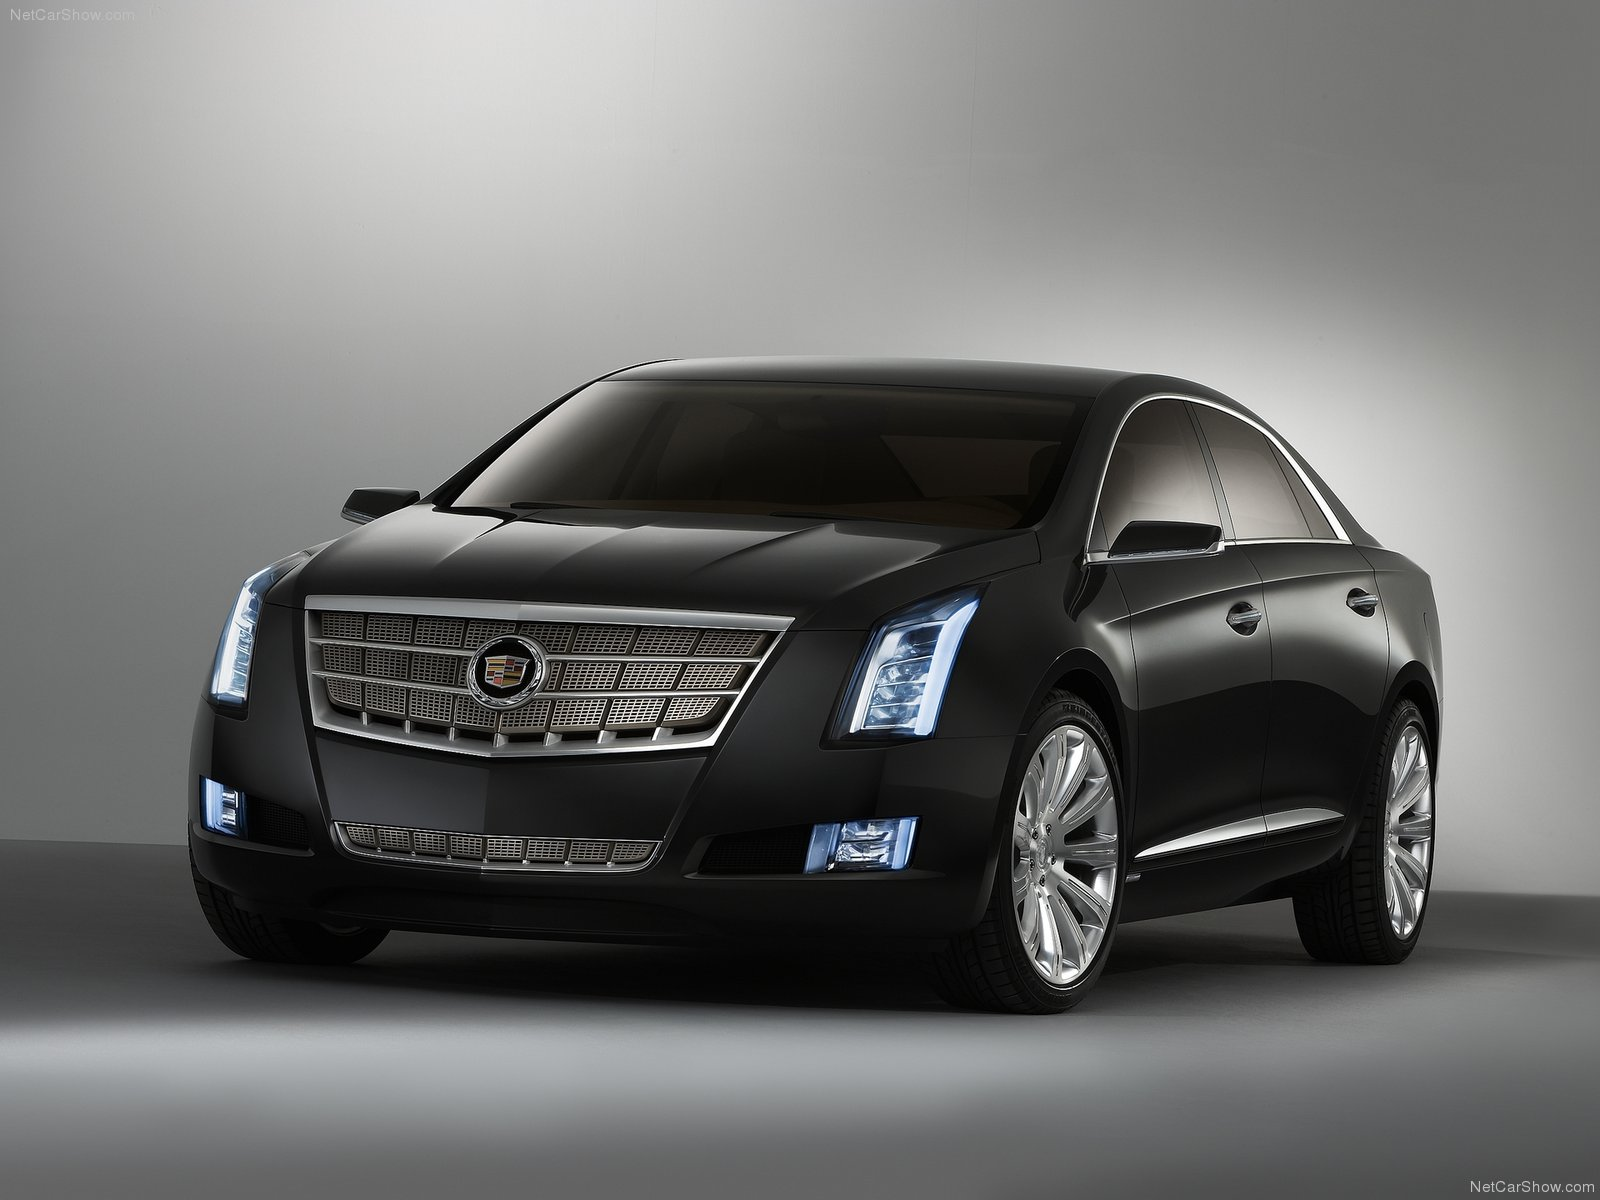 autozone 2010 cadillac xts platinum concept review specifications and features. Black Bedroom Furniture Sets. Home Design Ideas